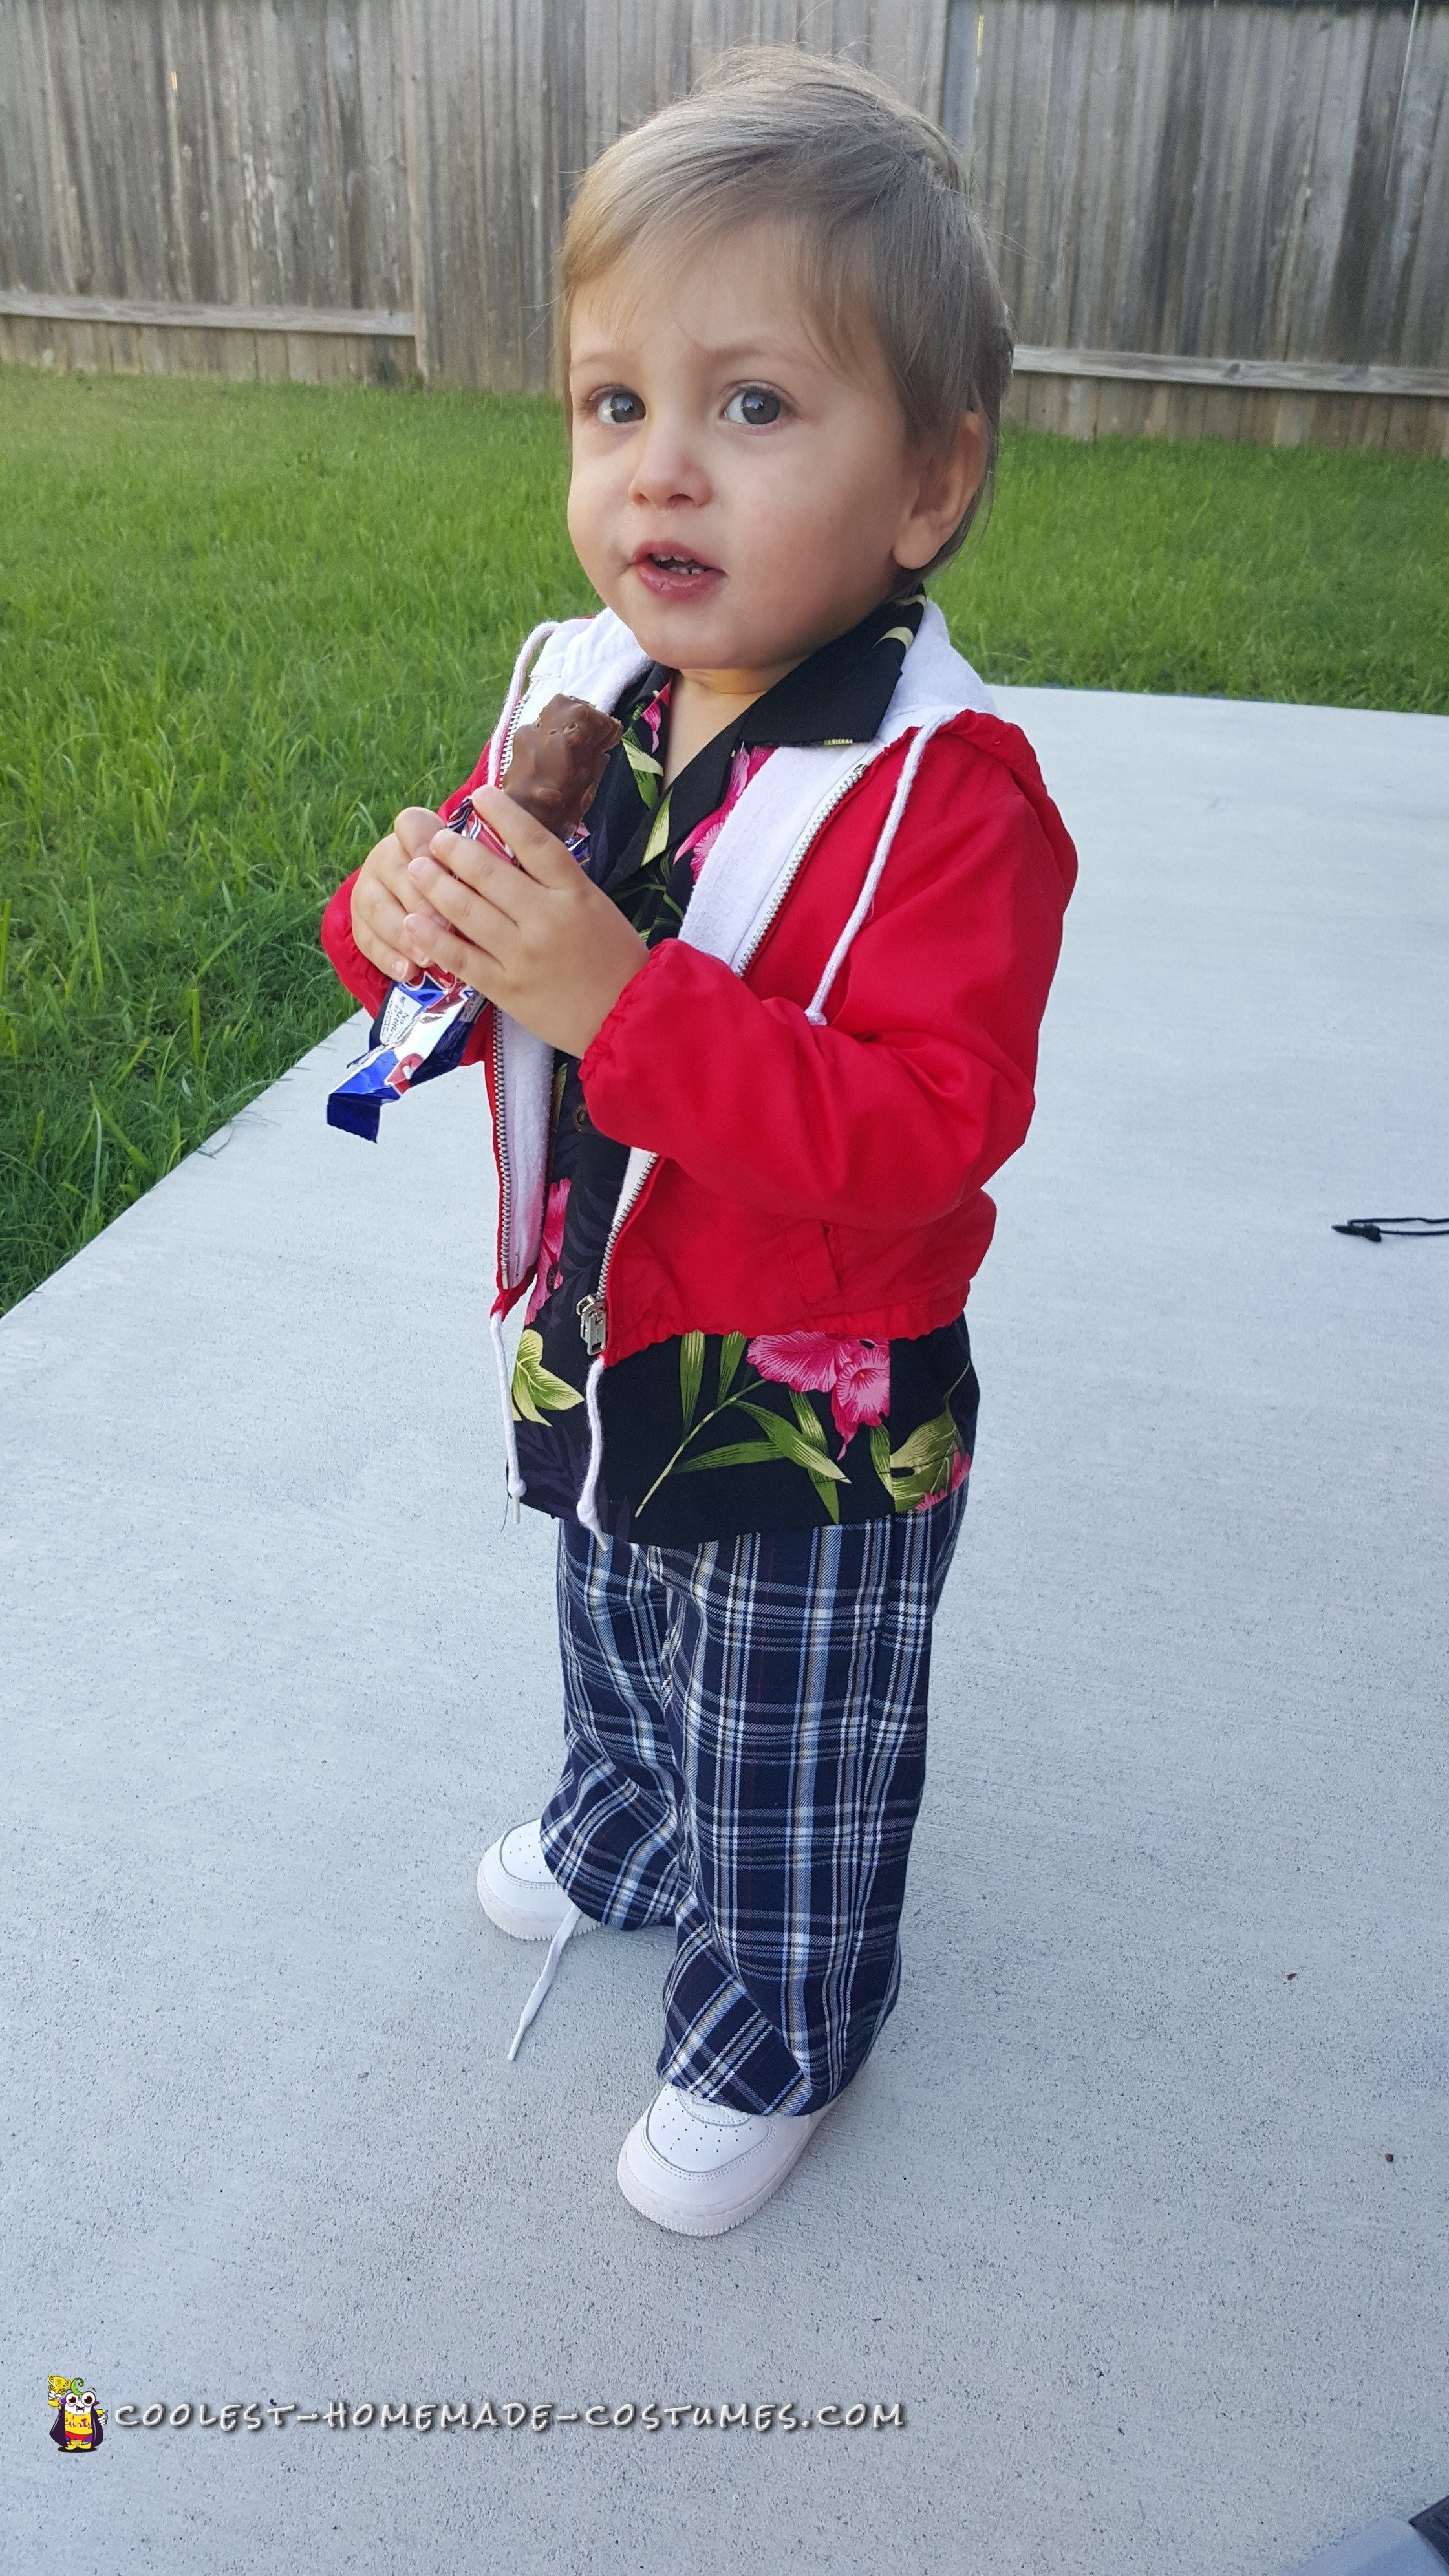 Toddler Chunk Costume from Goonies